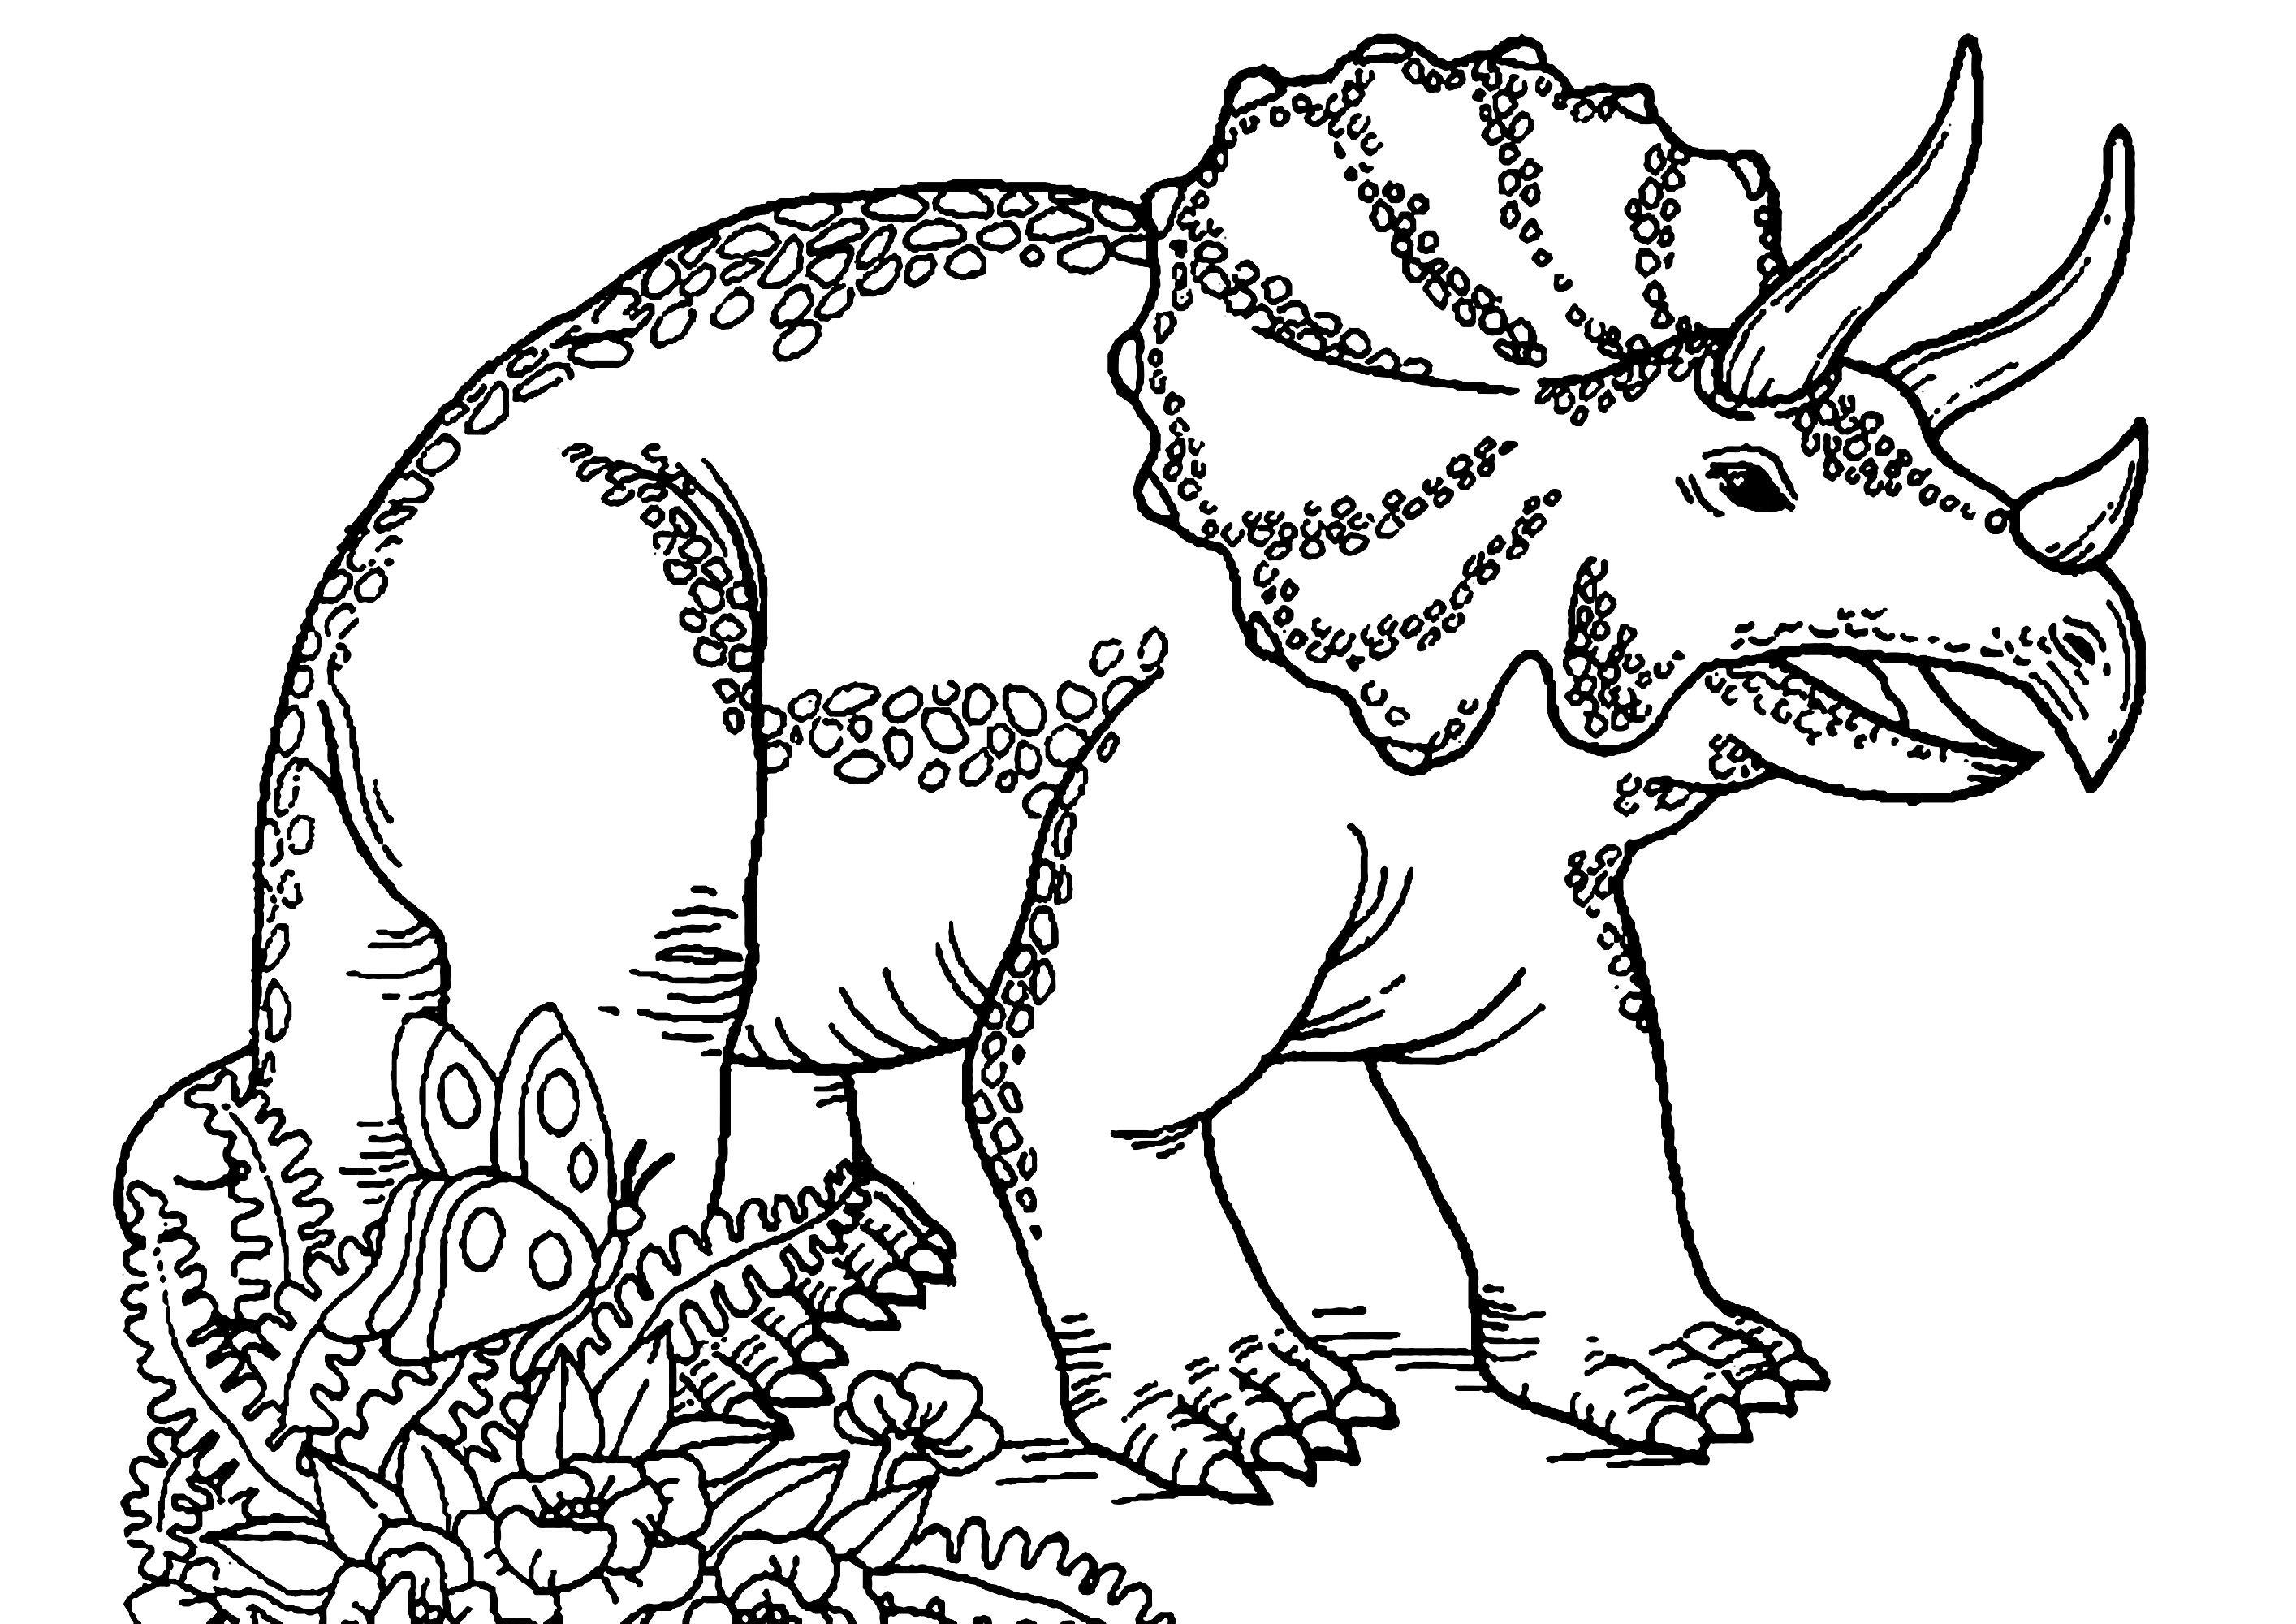 dinasour coloring pages free printable dinosaur coloring pages for kids dinasour coloring pages 1 1